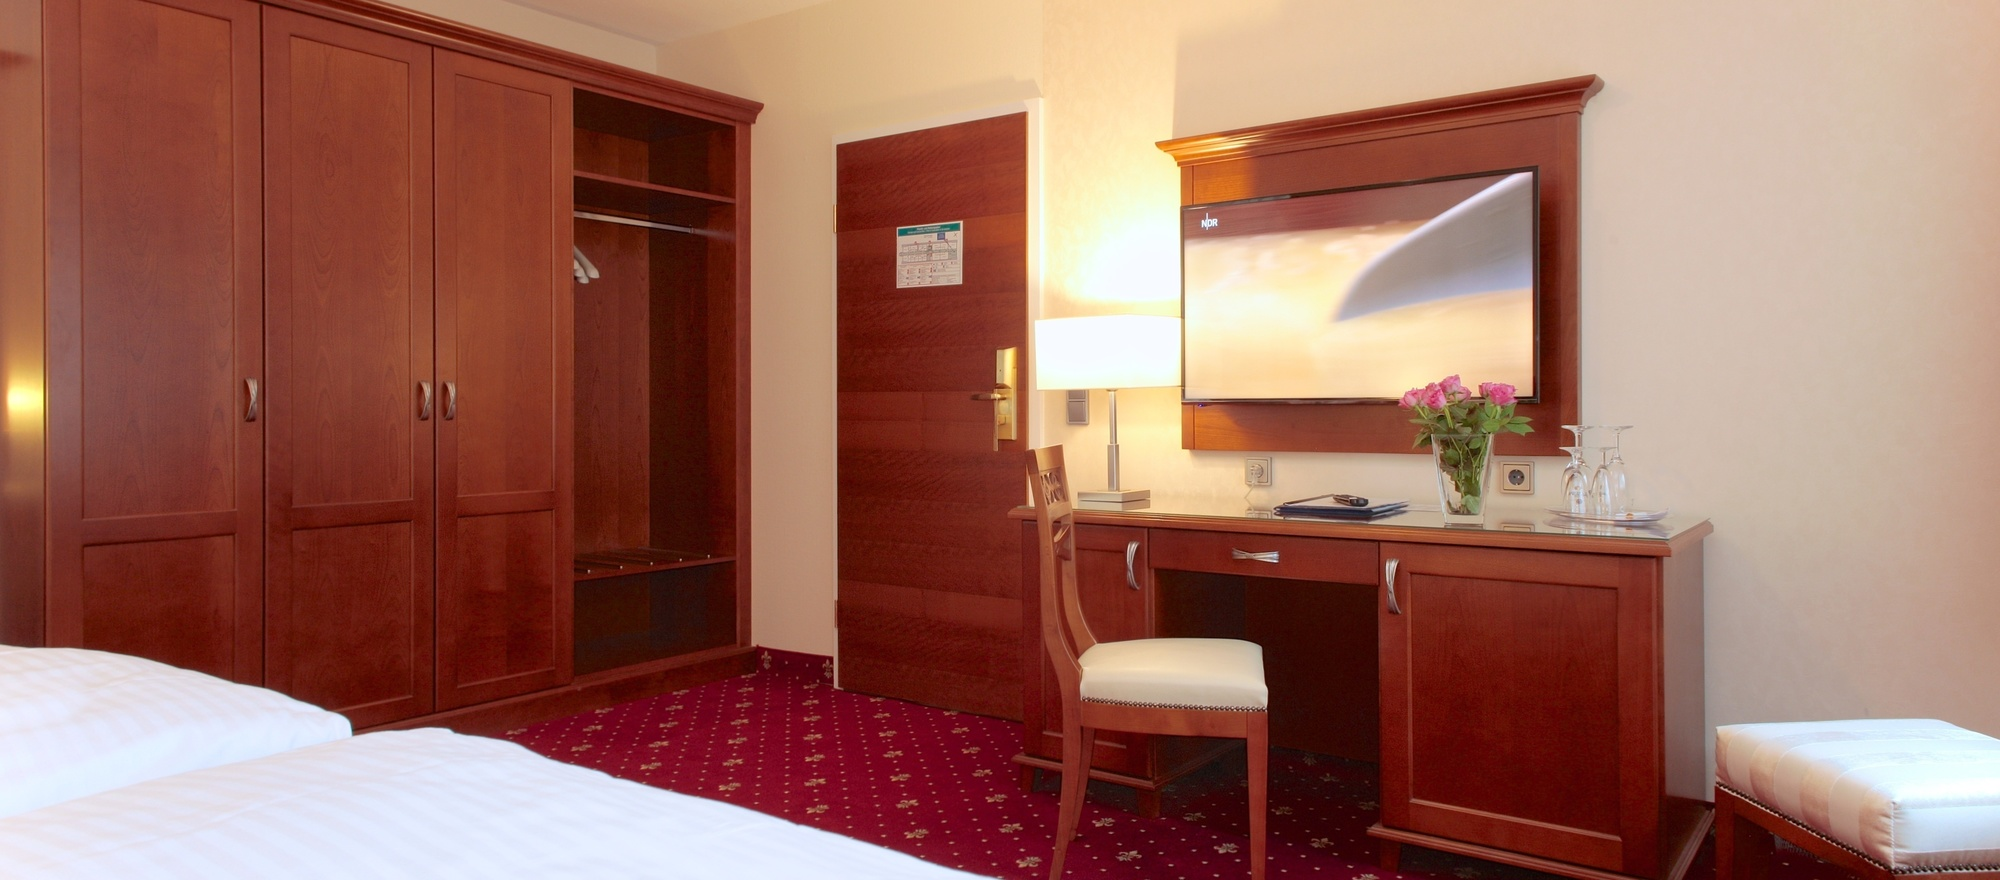 Double room in the Ringhotel Faehrhaus in Bad Bevensen, 4-stars hotel in the Luneburg Heath region